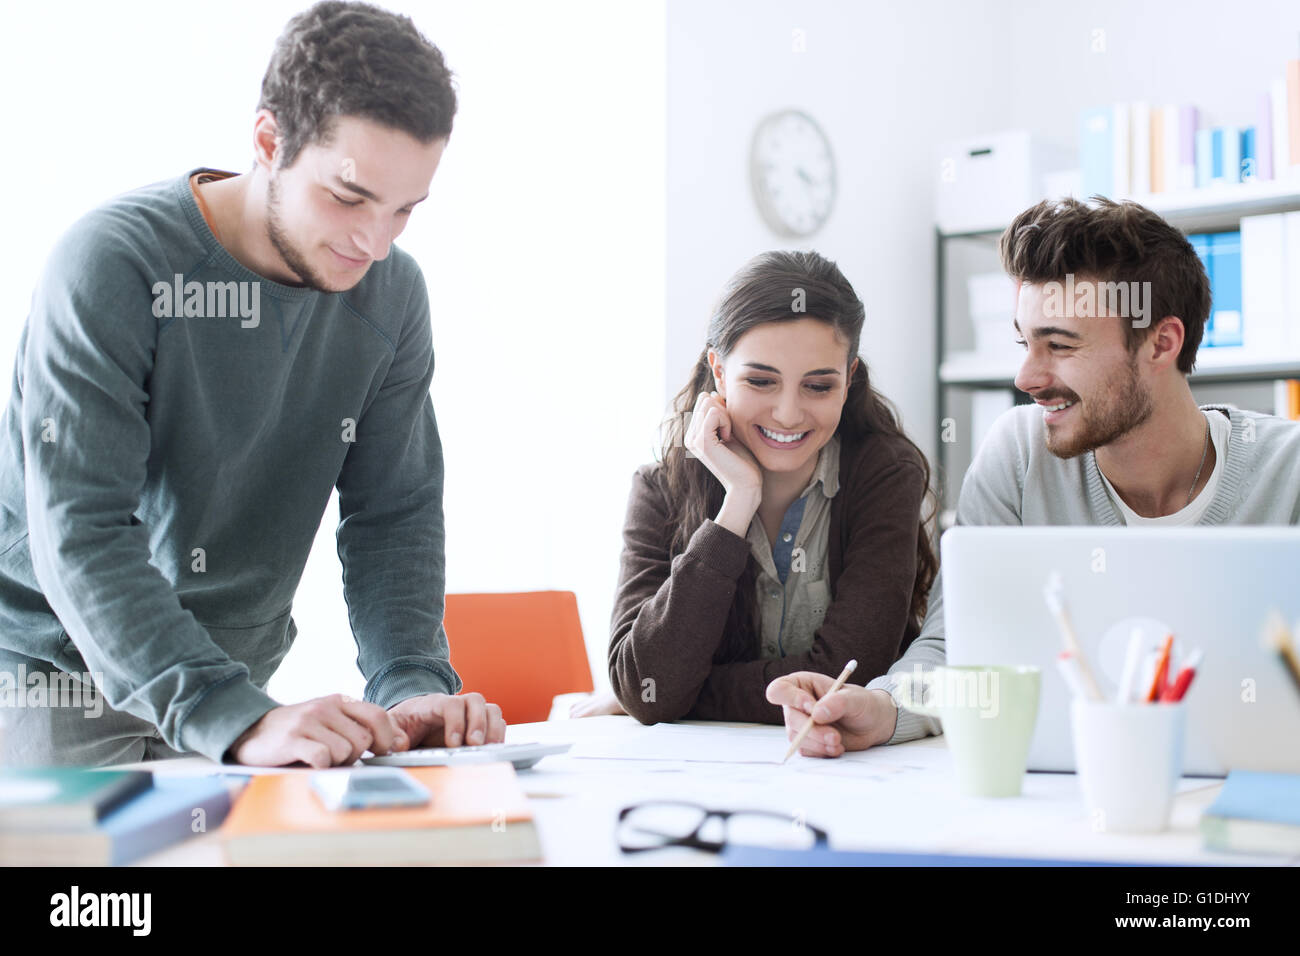 Young college students working on a design project, education and creativity concept - Stock Image